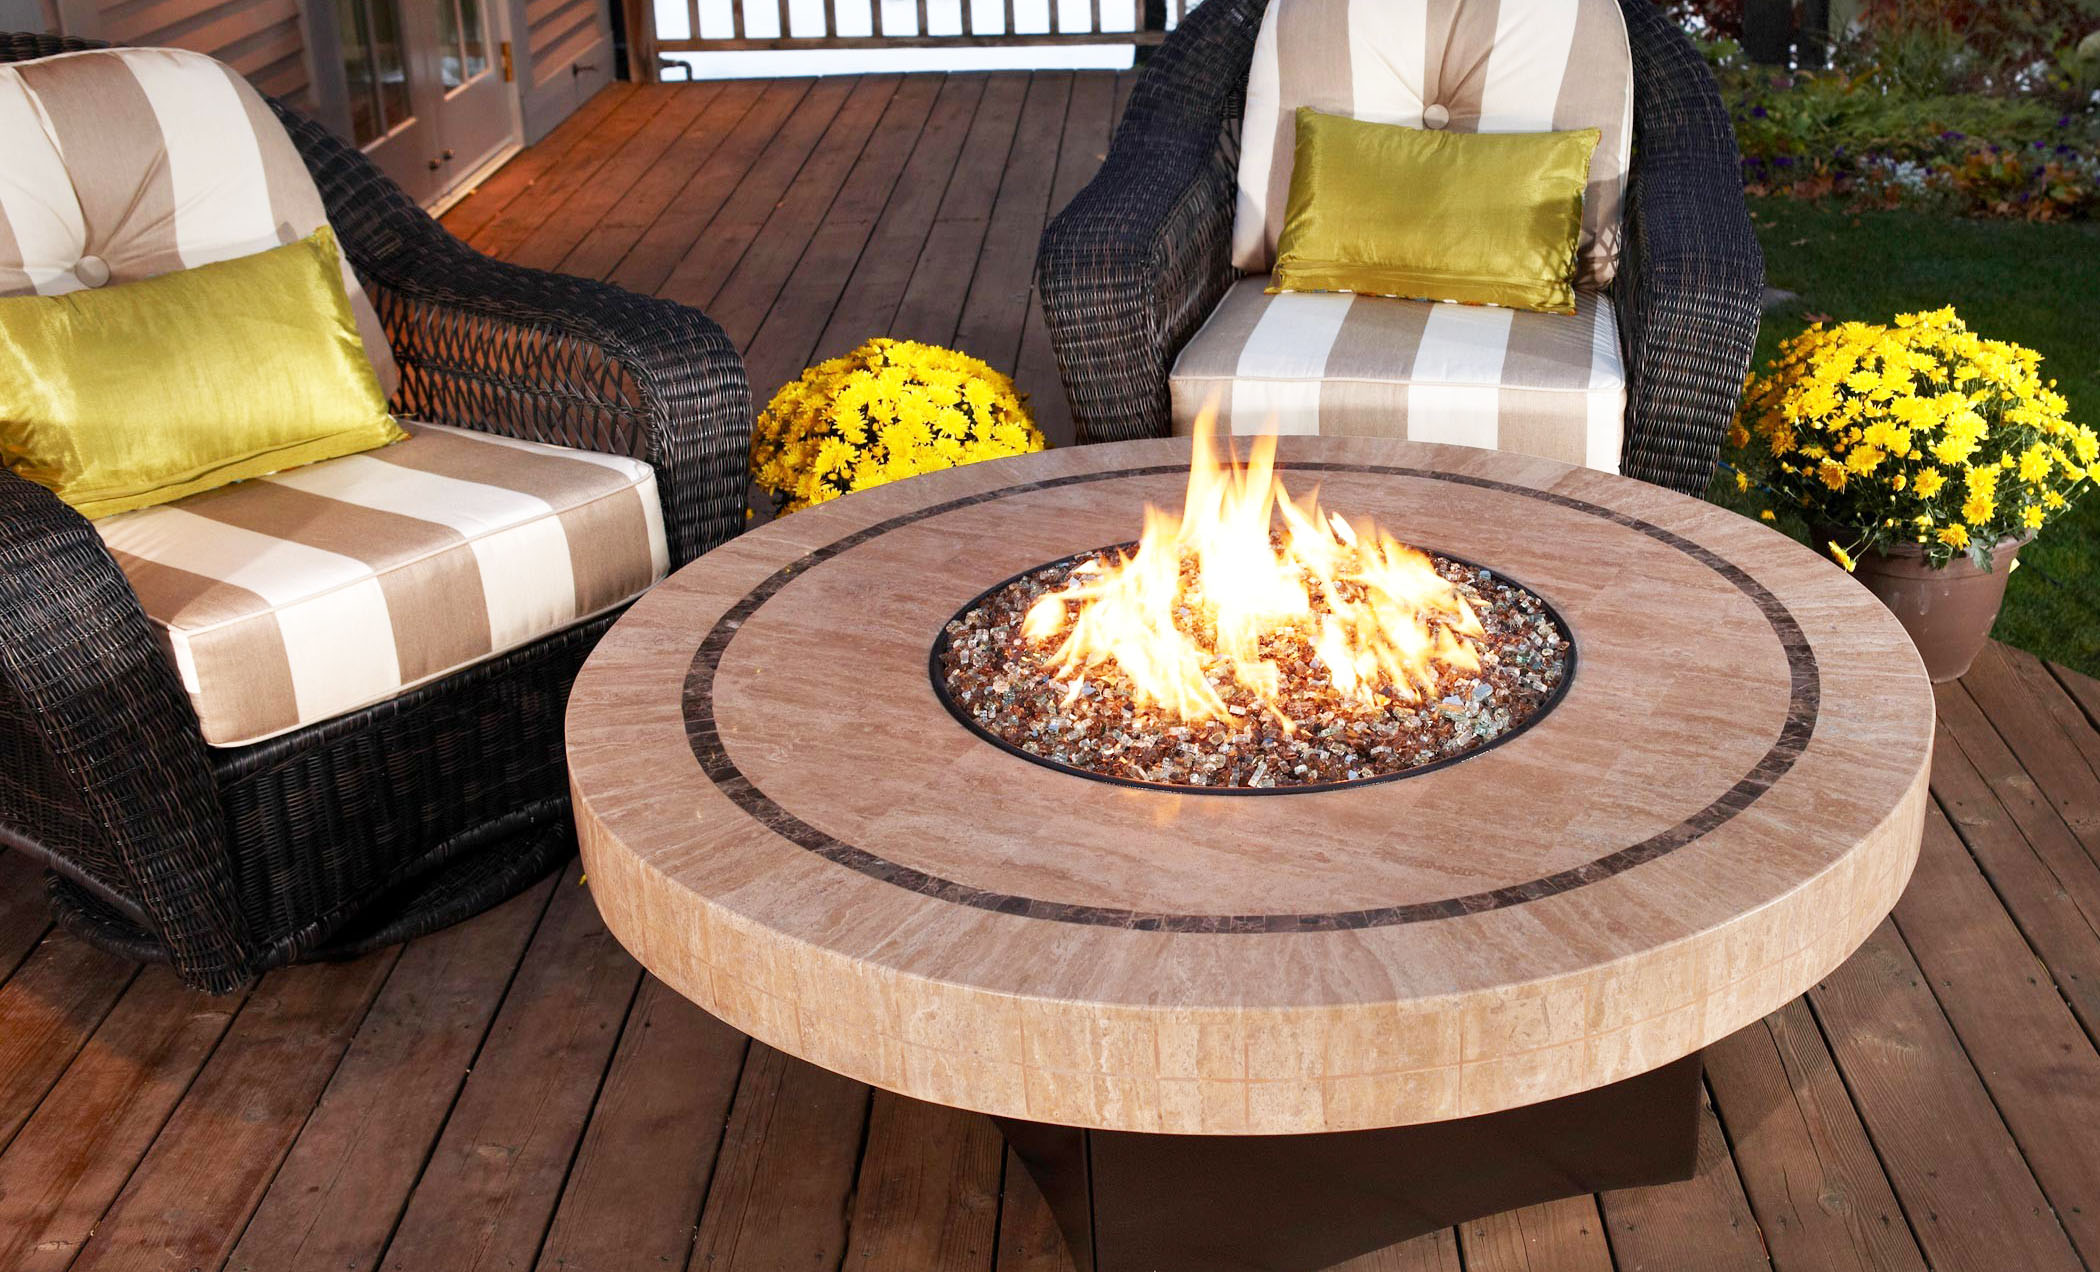 How to make tabletop fire pit kit DIY for outdoor gas fire pit with propane gas fire pit in custom patio fire pit burner sets